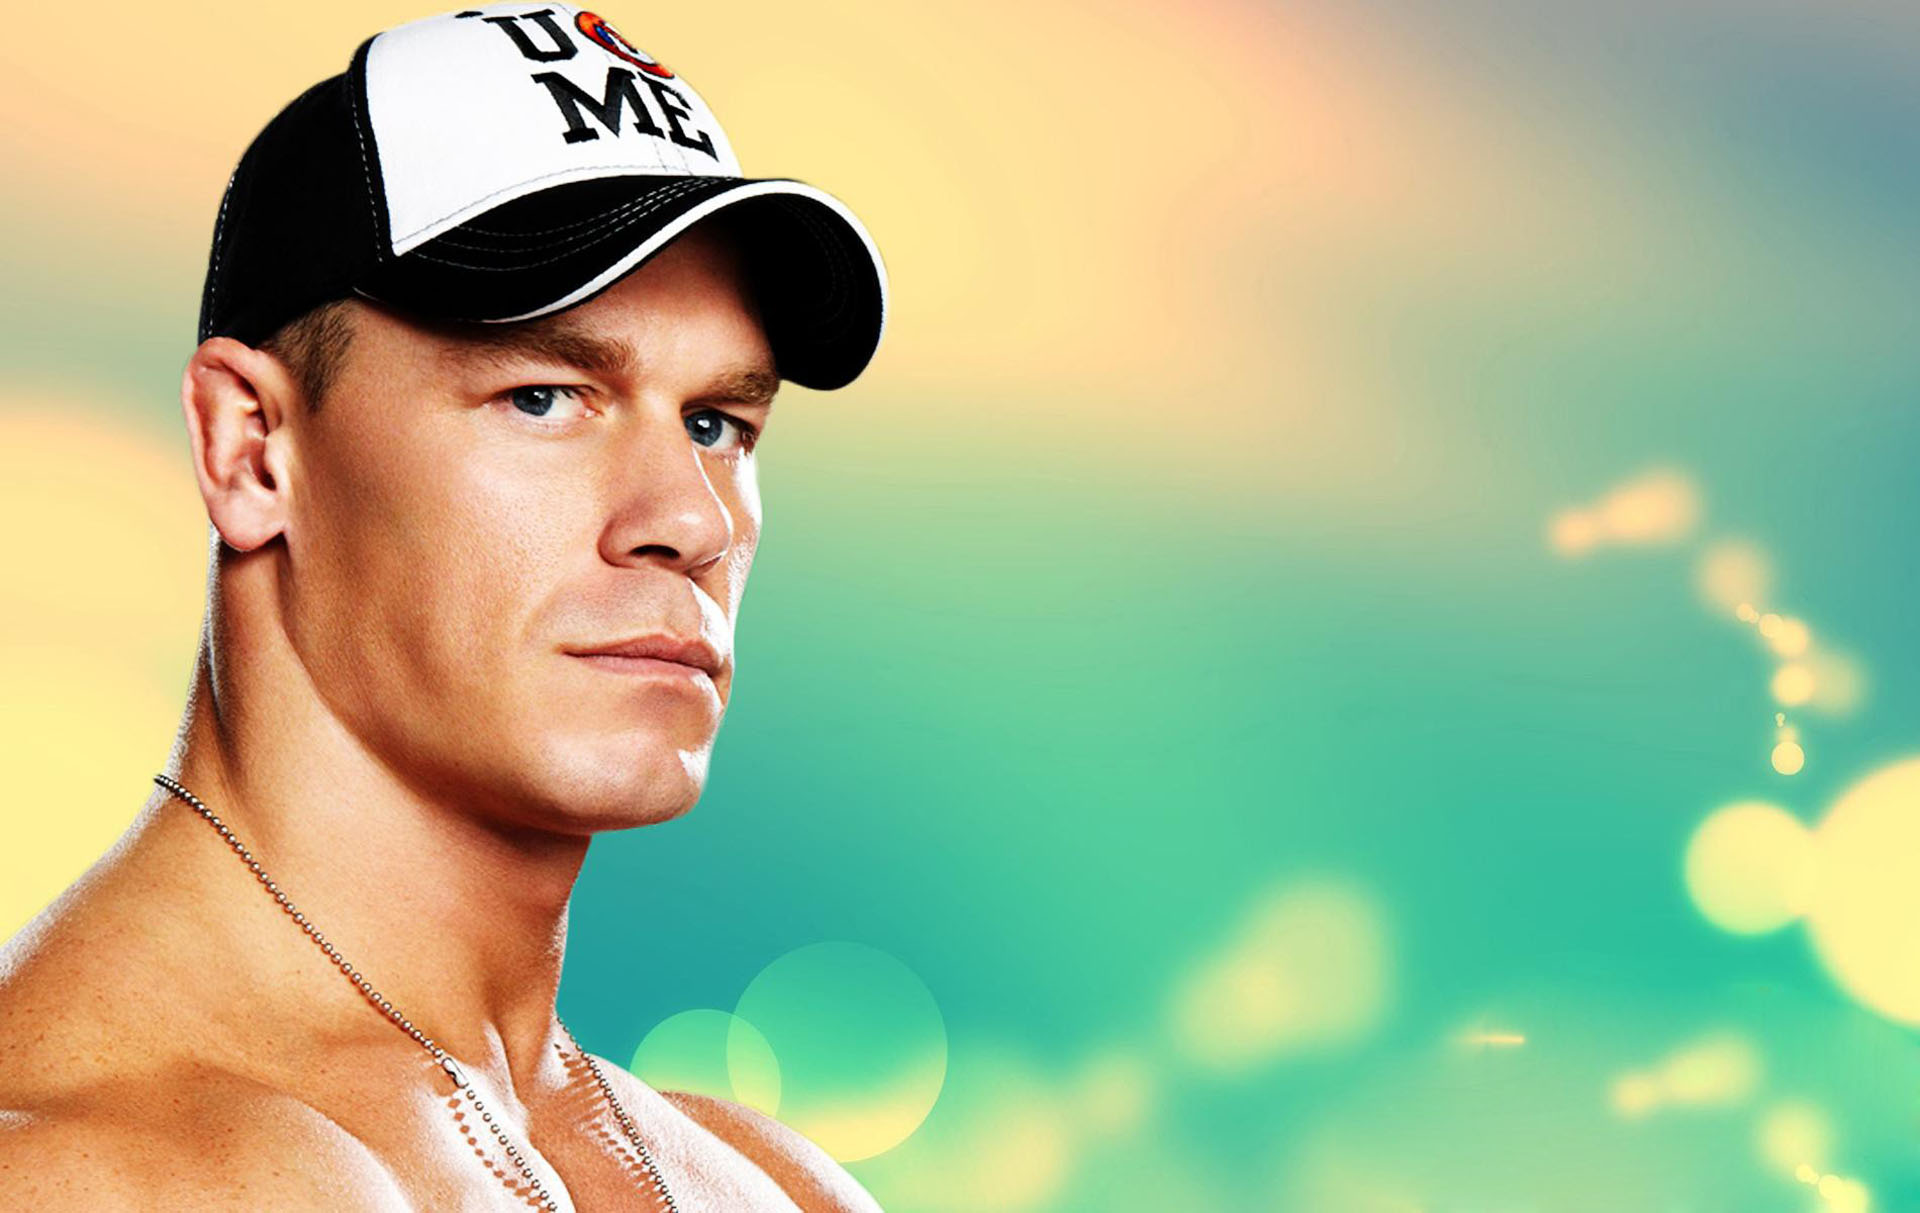 John Cena Wallpaper   Pictures Images and Photos   SimilarMag 1920x1213